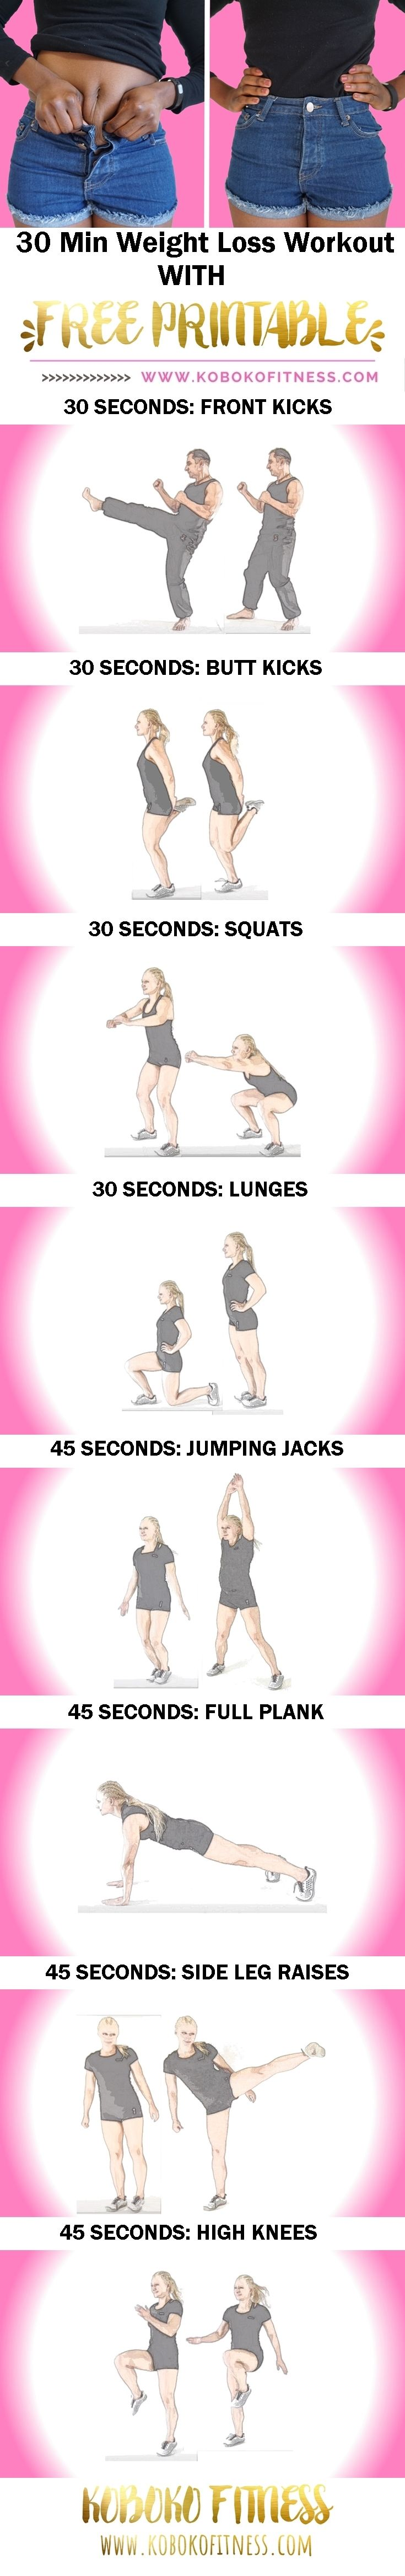 The Best 30 Min Weight Loss Workout (+ Free Printable Download ...